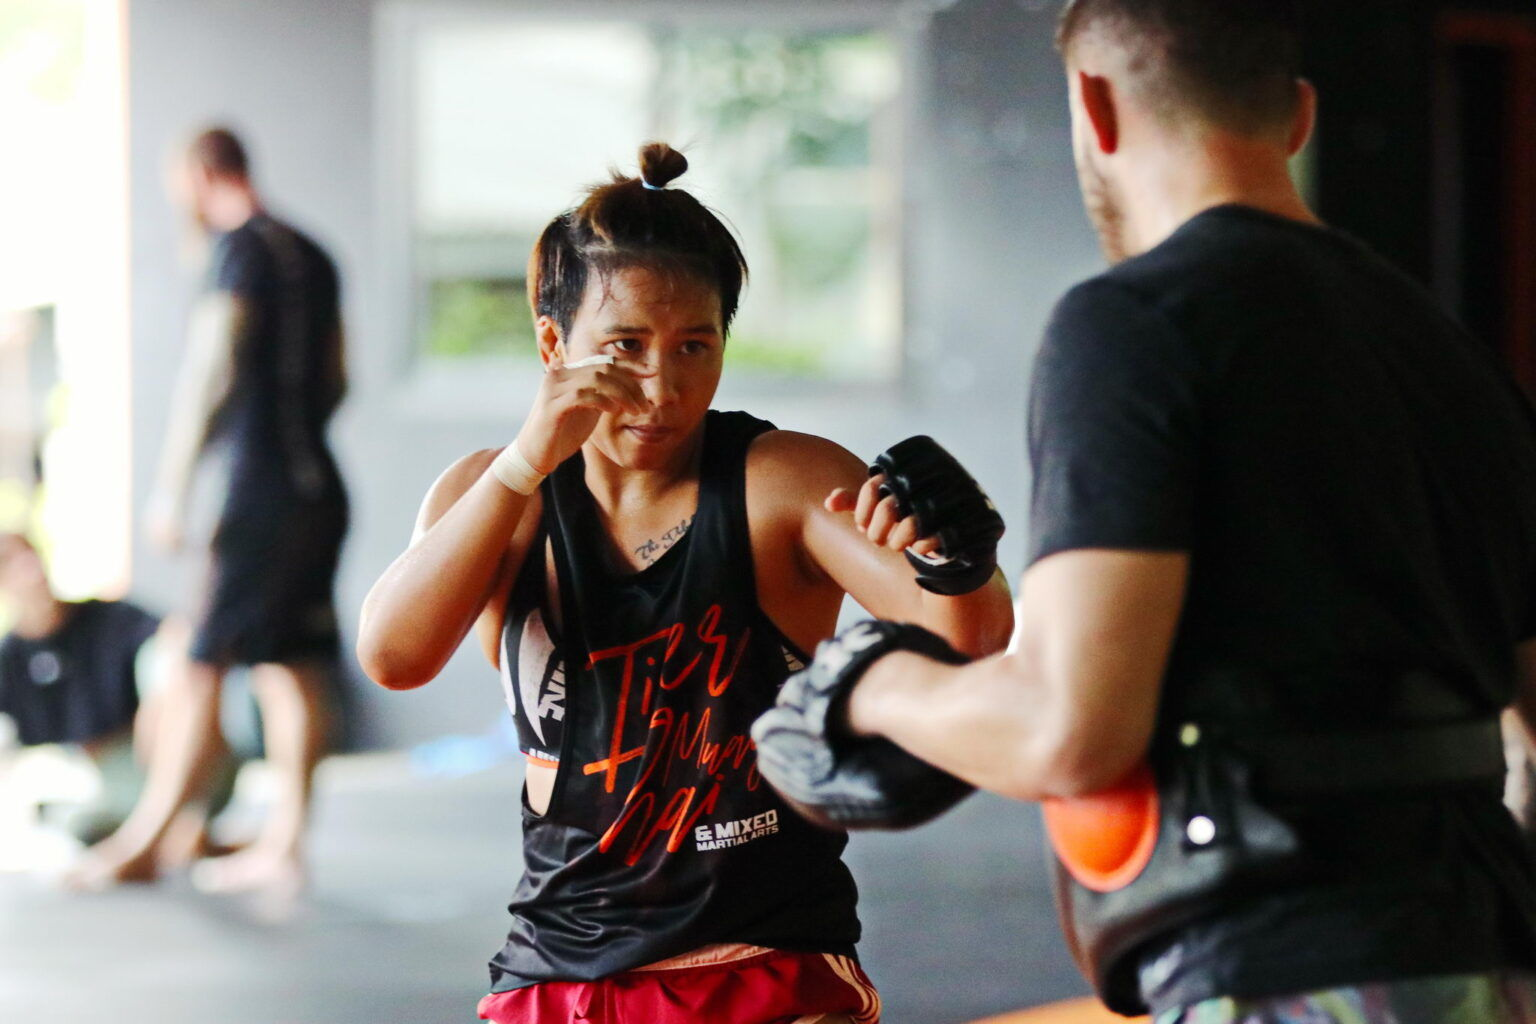 Phuket Muay Thai fighter is the first Thai national to compete in UFC | News by Thaiger